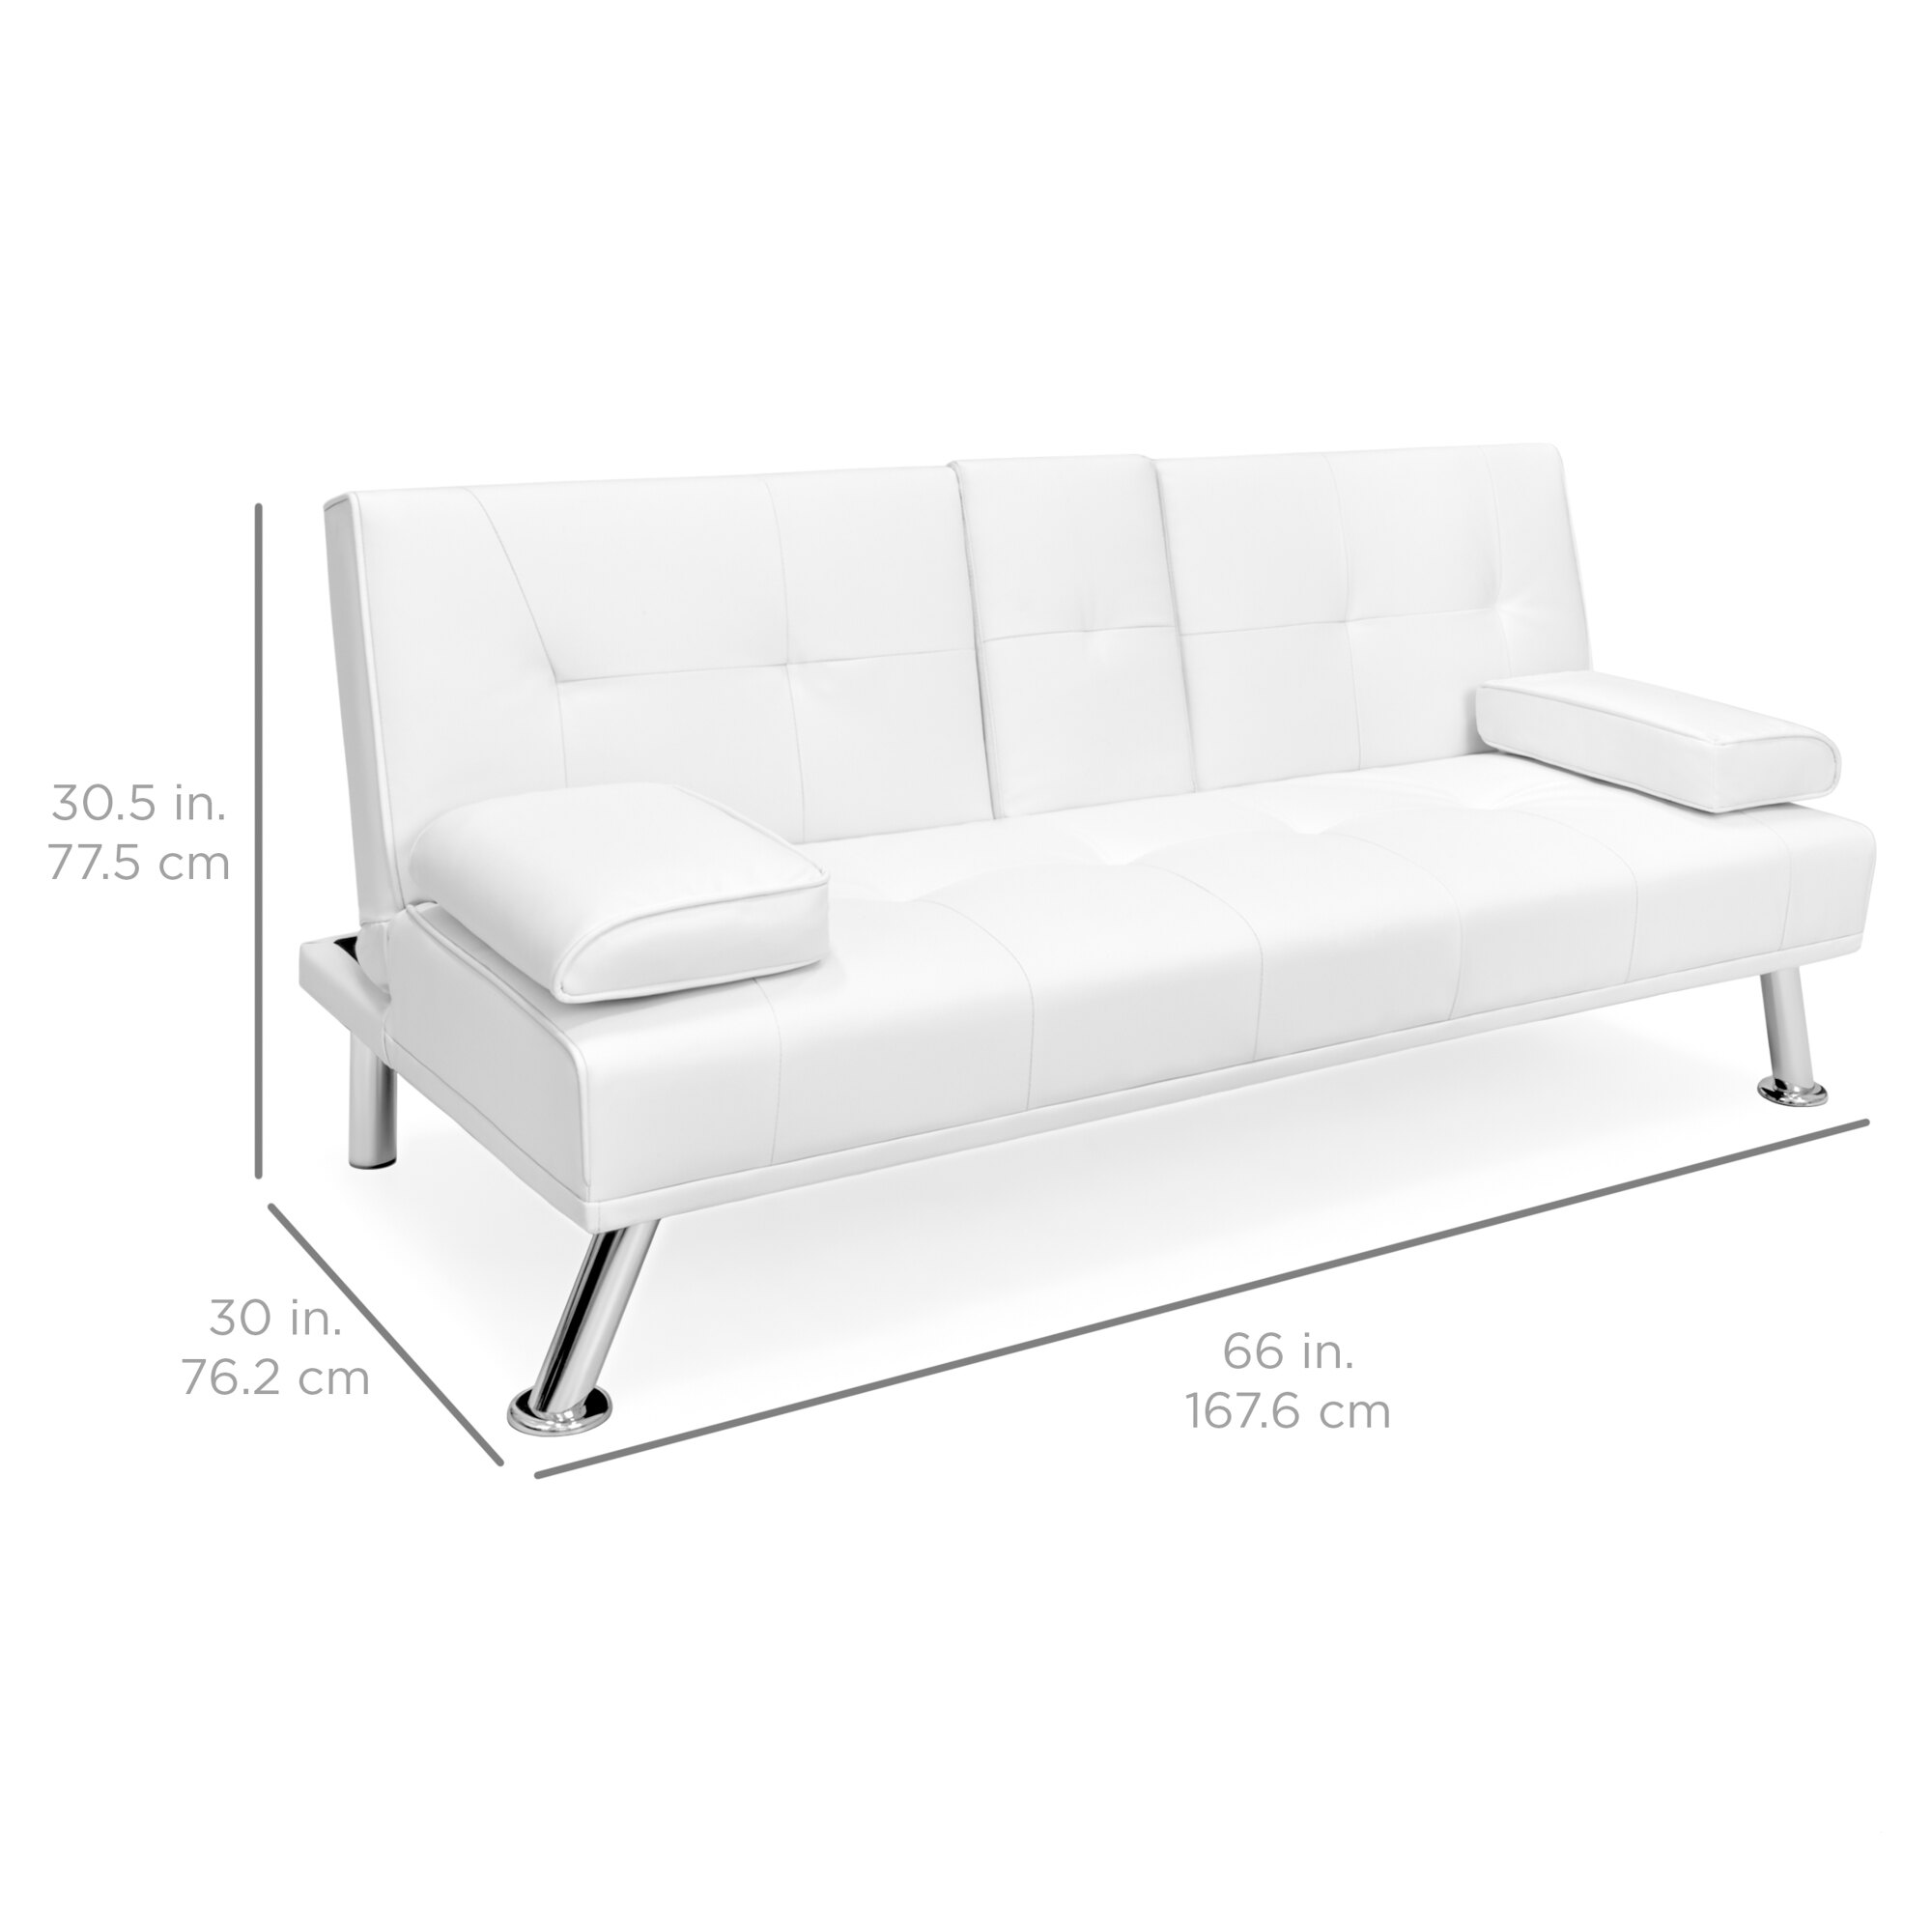 BestChoiceProducts: Best Choice Products Modern Faux Leather Convertible  Futon Sofa Bed Recliner Couch w/ Metal Legs, 2 Cup Holders - White | ...